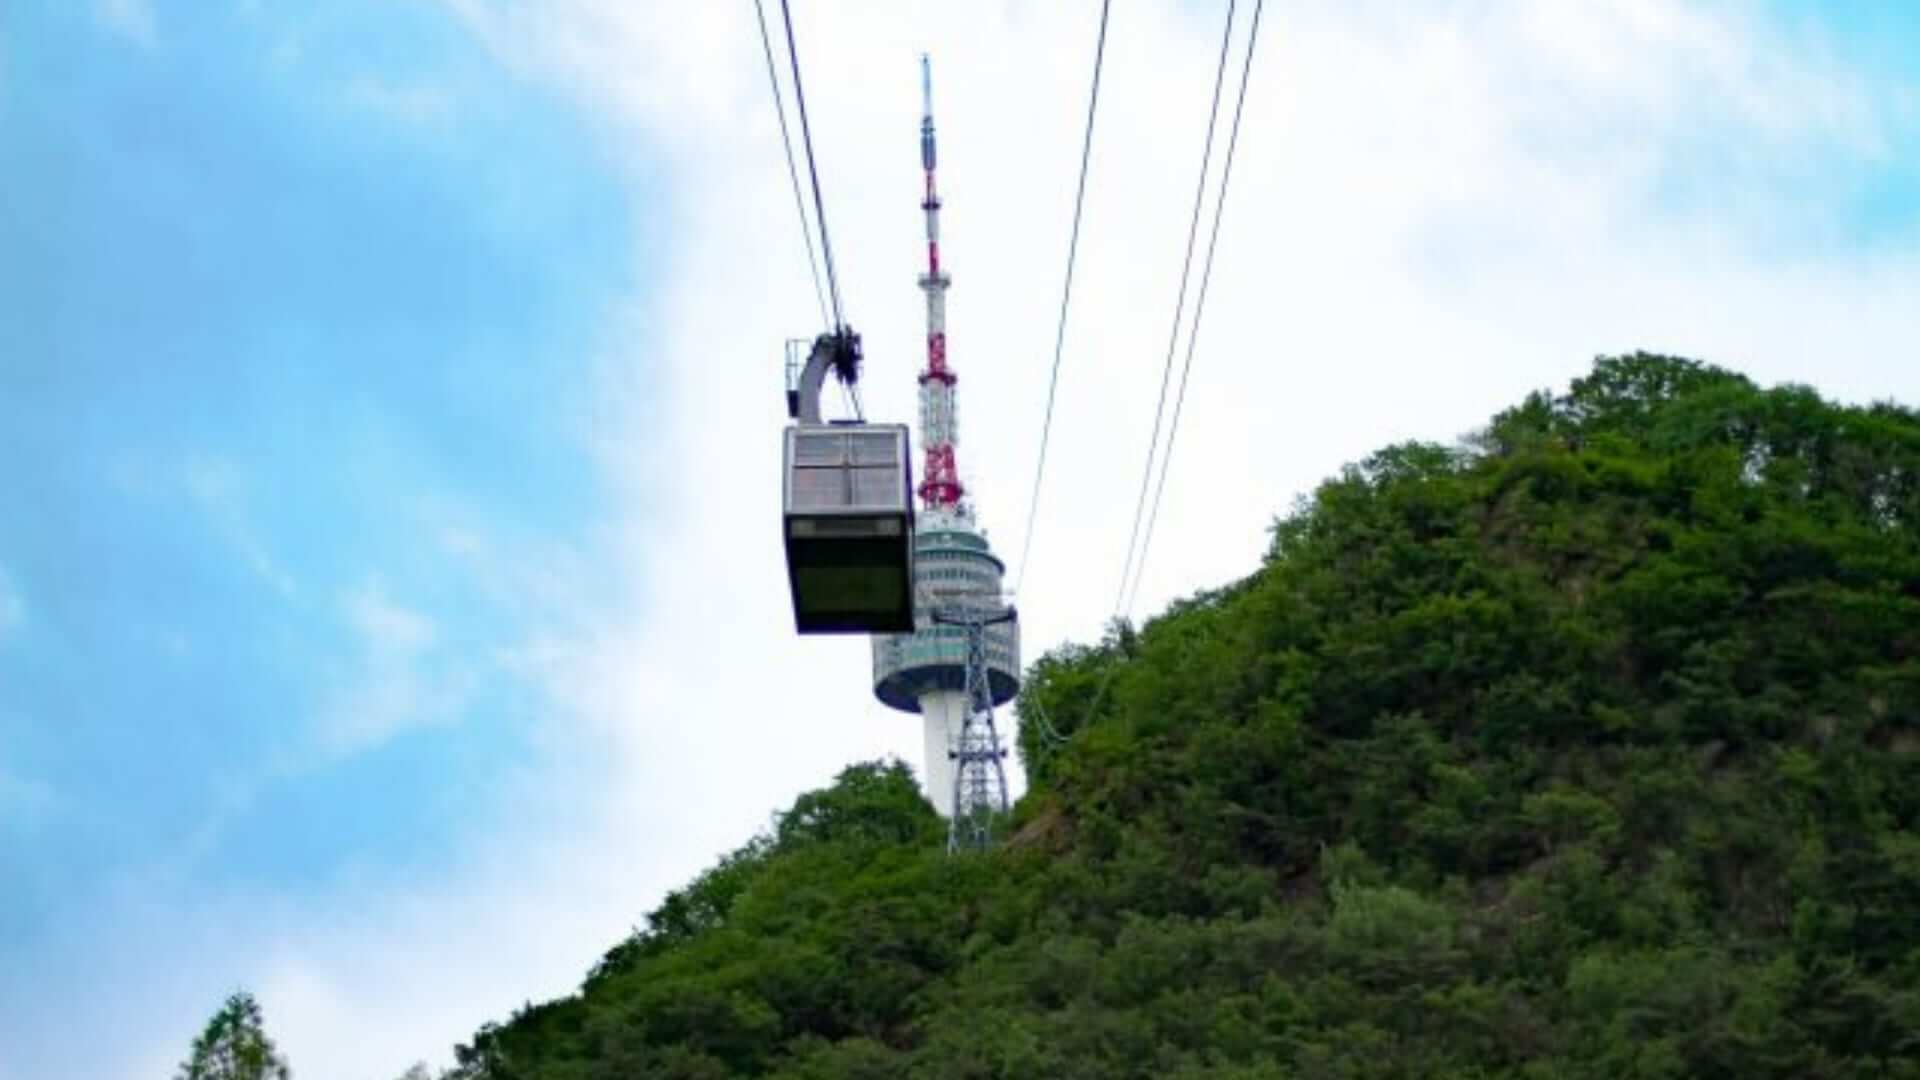 People are going by cable car up a hill to visit the Seoul Tower in South-Korea.